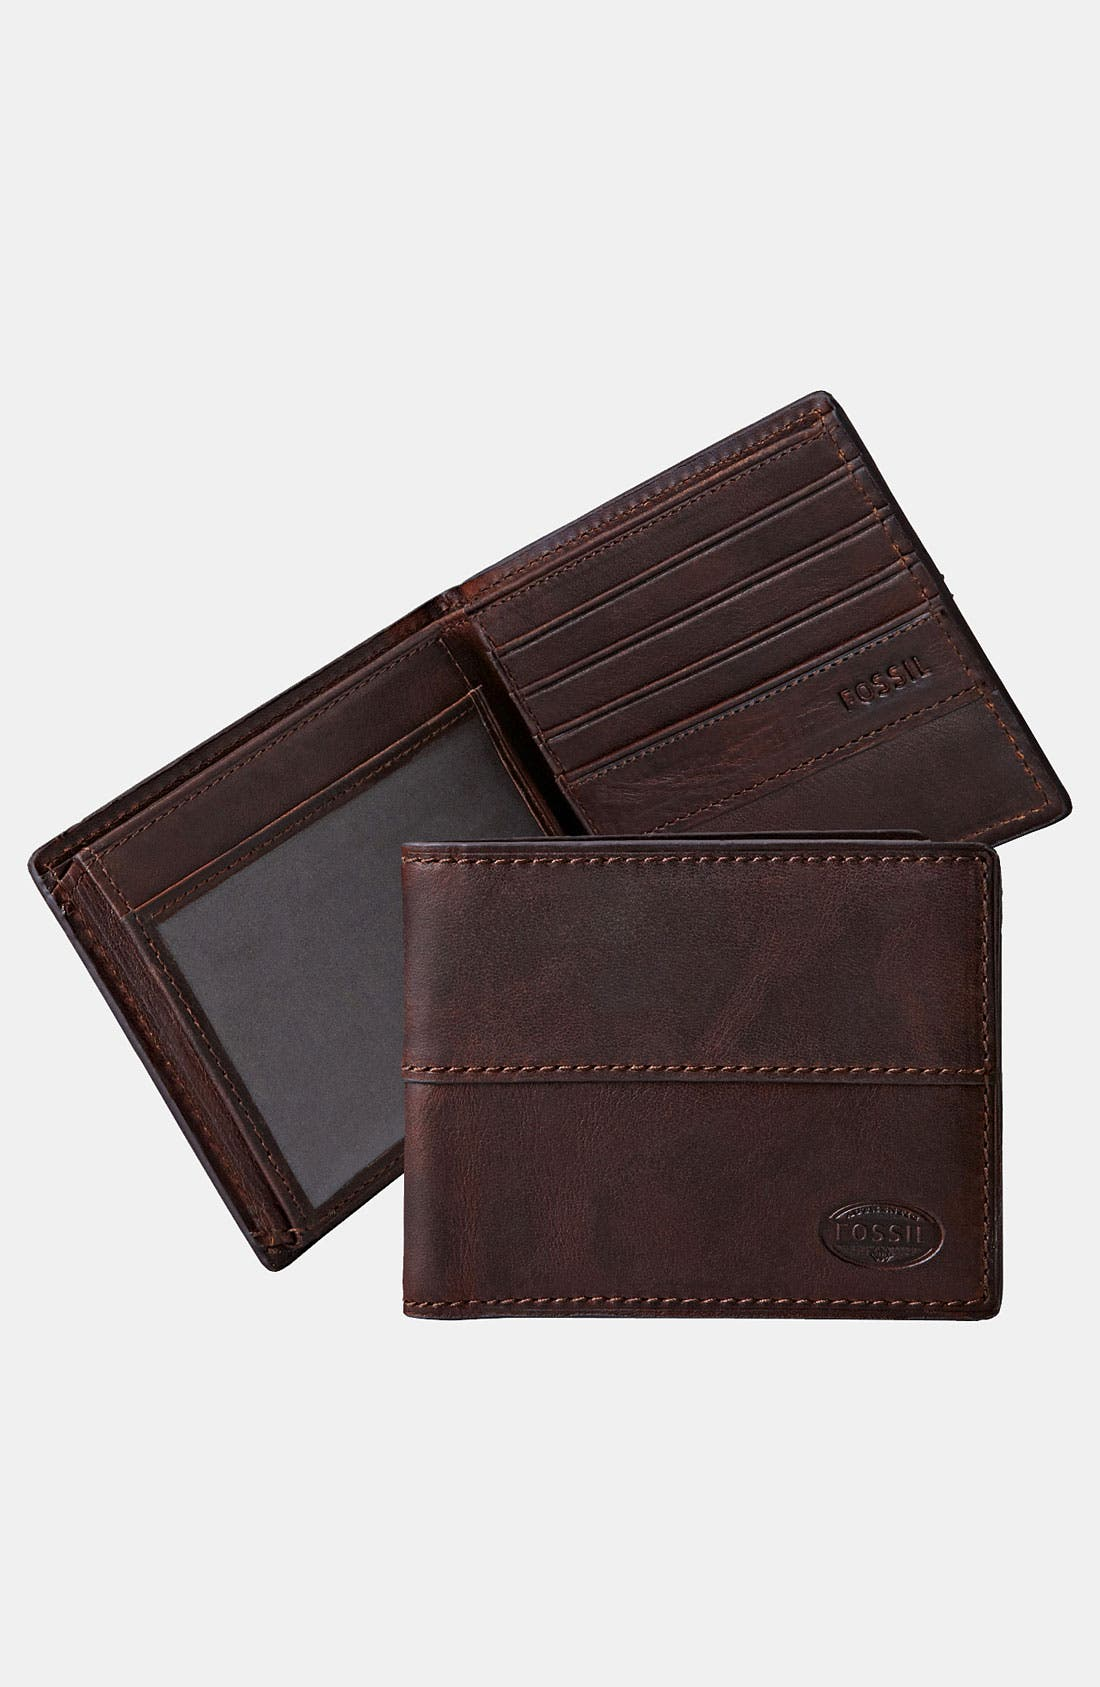 Alternate Image 1 Selected - Fossil 'Dillon' Traveler Wallet